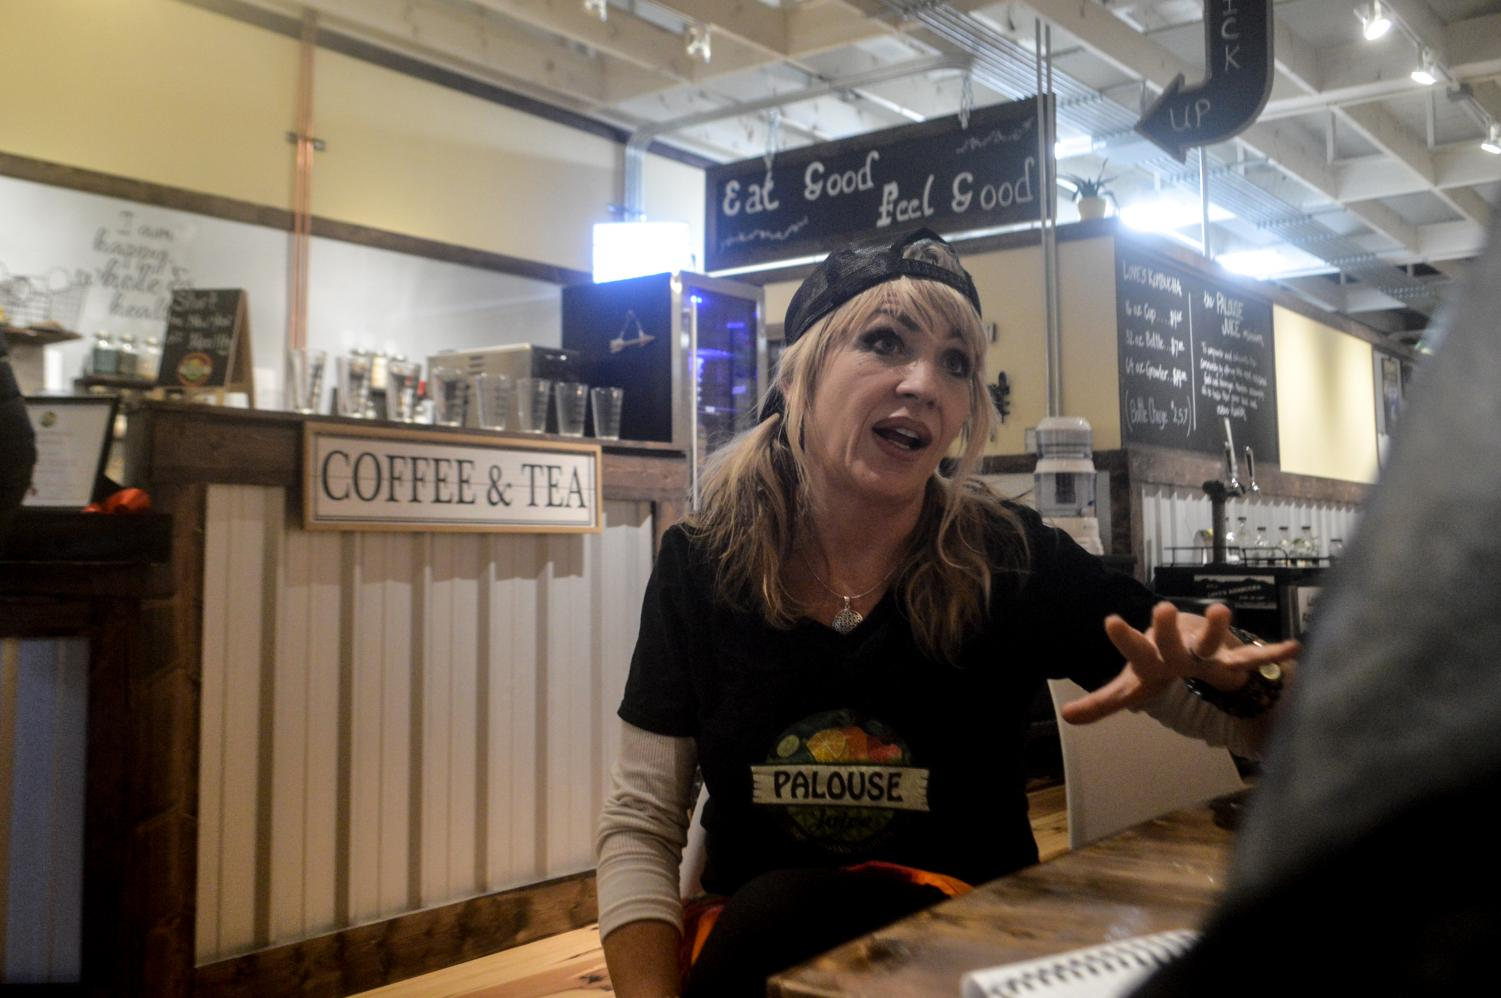 Palouse Juice co-owner Toni Salerno-Baird explains the challenges that came with opening her first business.